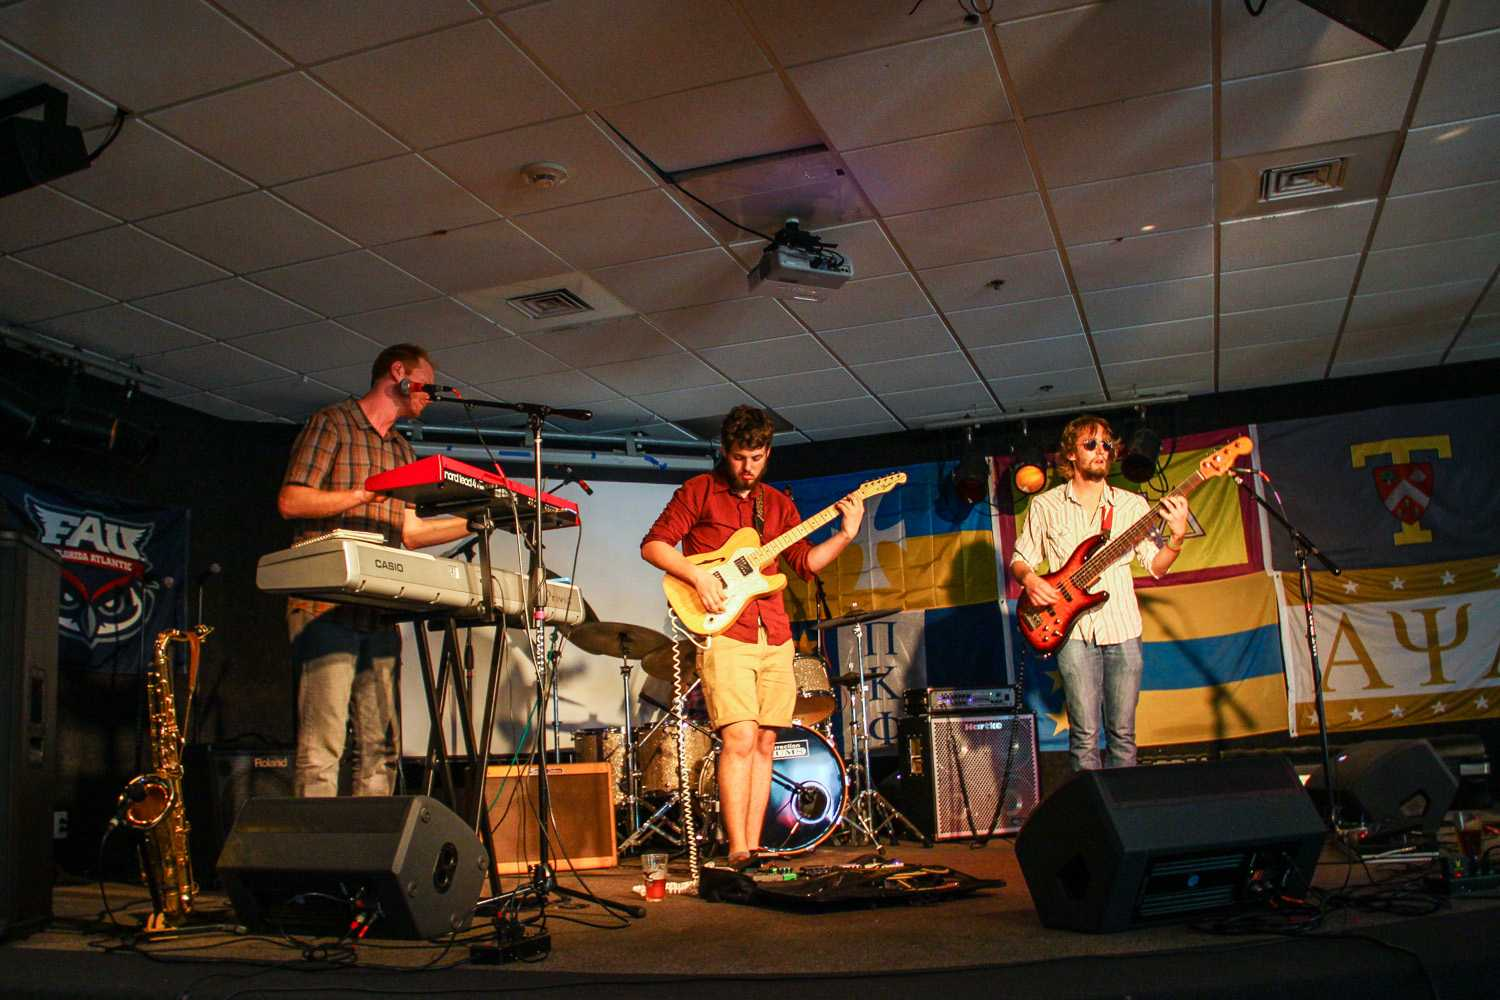 """Fuzzhound performs their song """"Nothing"""". Members include: Dave Pohly on bass guitar, Jordan Duke on keyboard and saxaphone, Austin Erblat on drums, and Jake Stuart on electric guitar.  Jasmine Garvey 